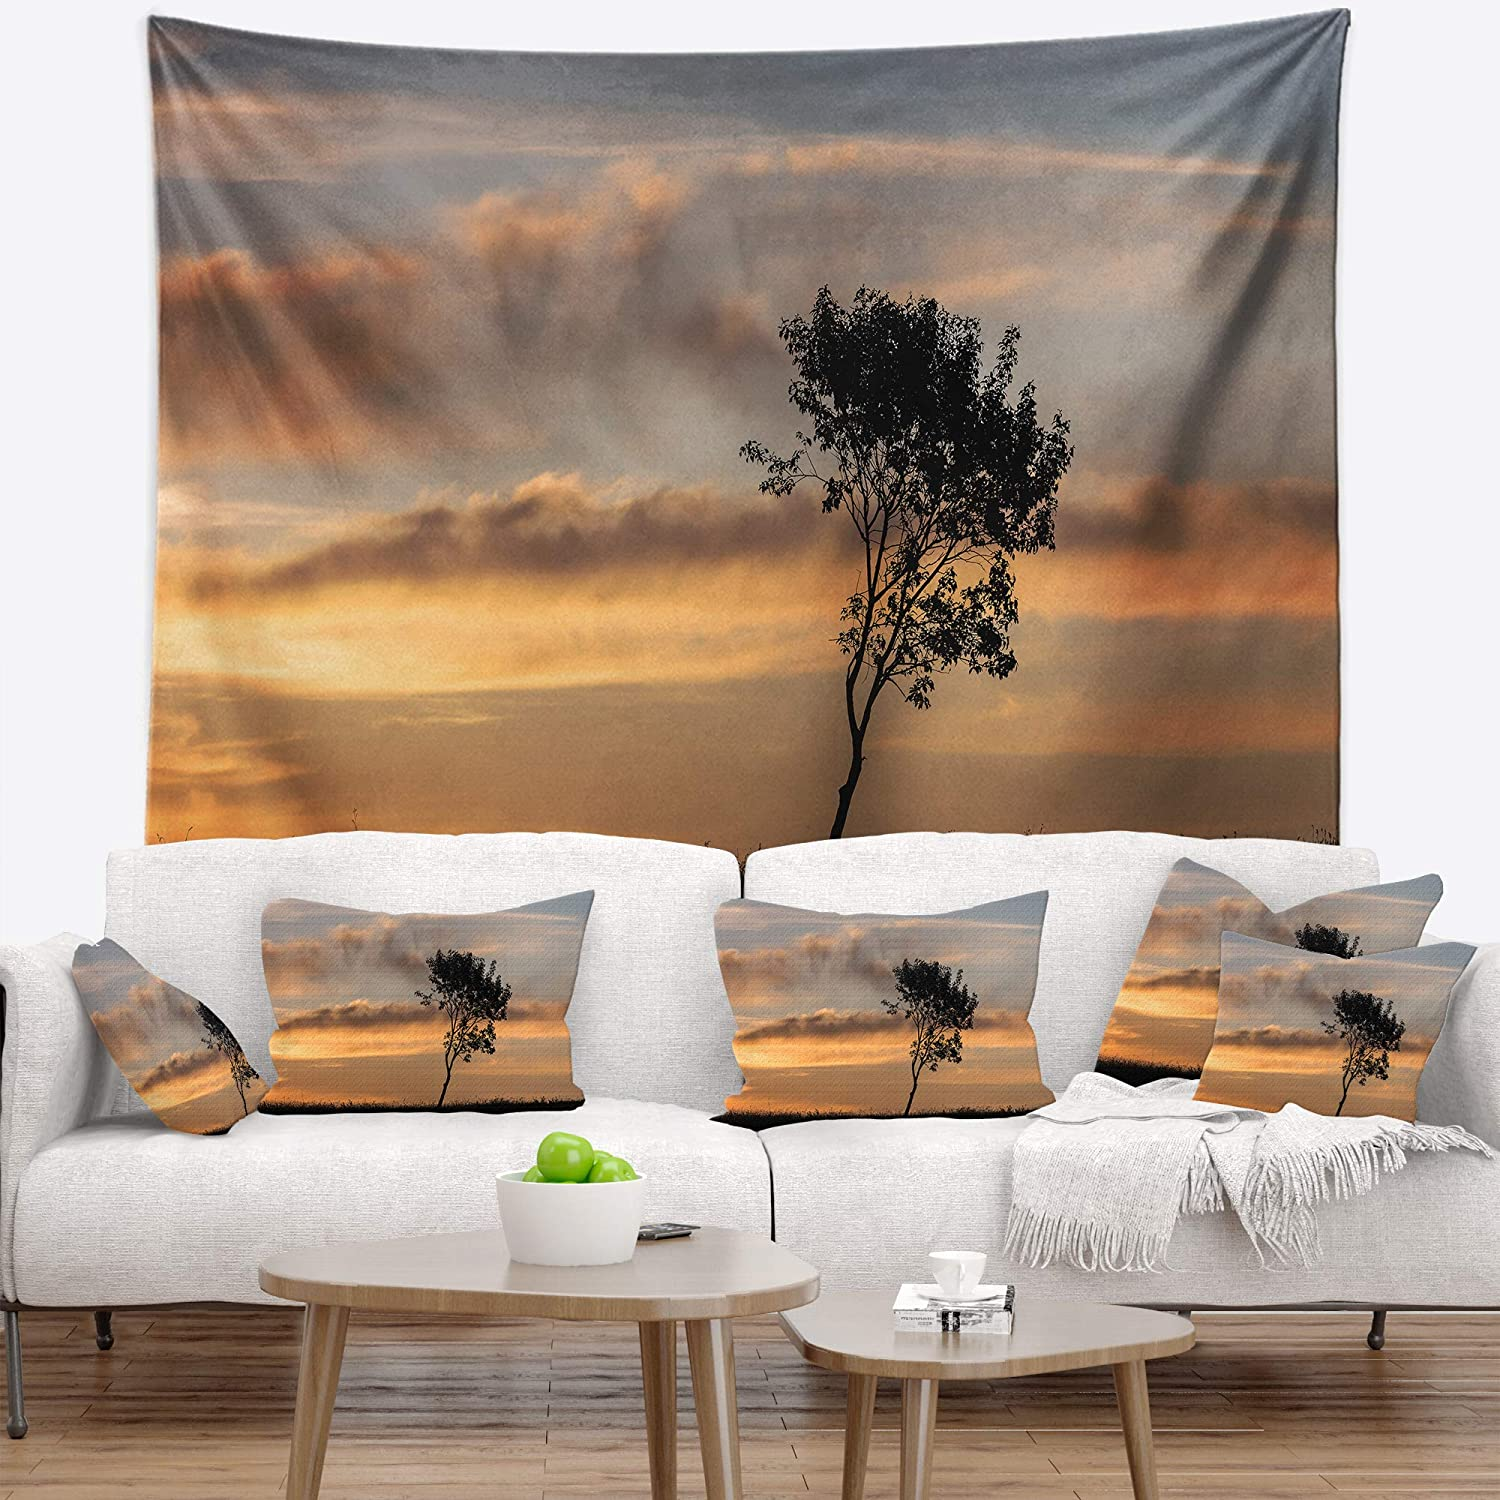 Designart TAP9995-60-50  Lonely Tree Silhouette Rightwards Landscape Blanket D/écor Art for Home and Office Wall Tapestry Large Created On Lightweight Polyester Fabric x 50 in 60 in